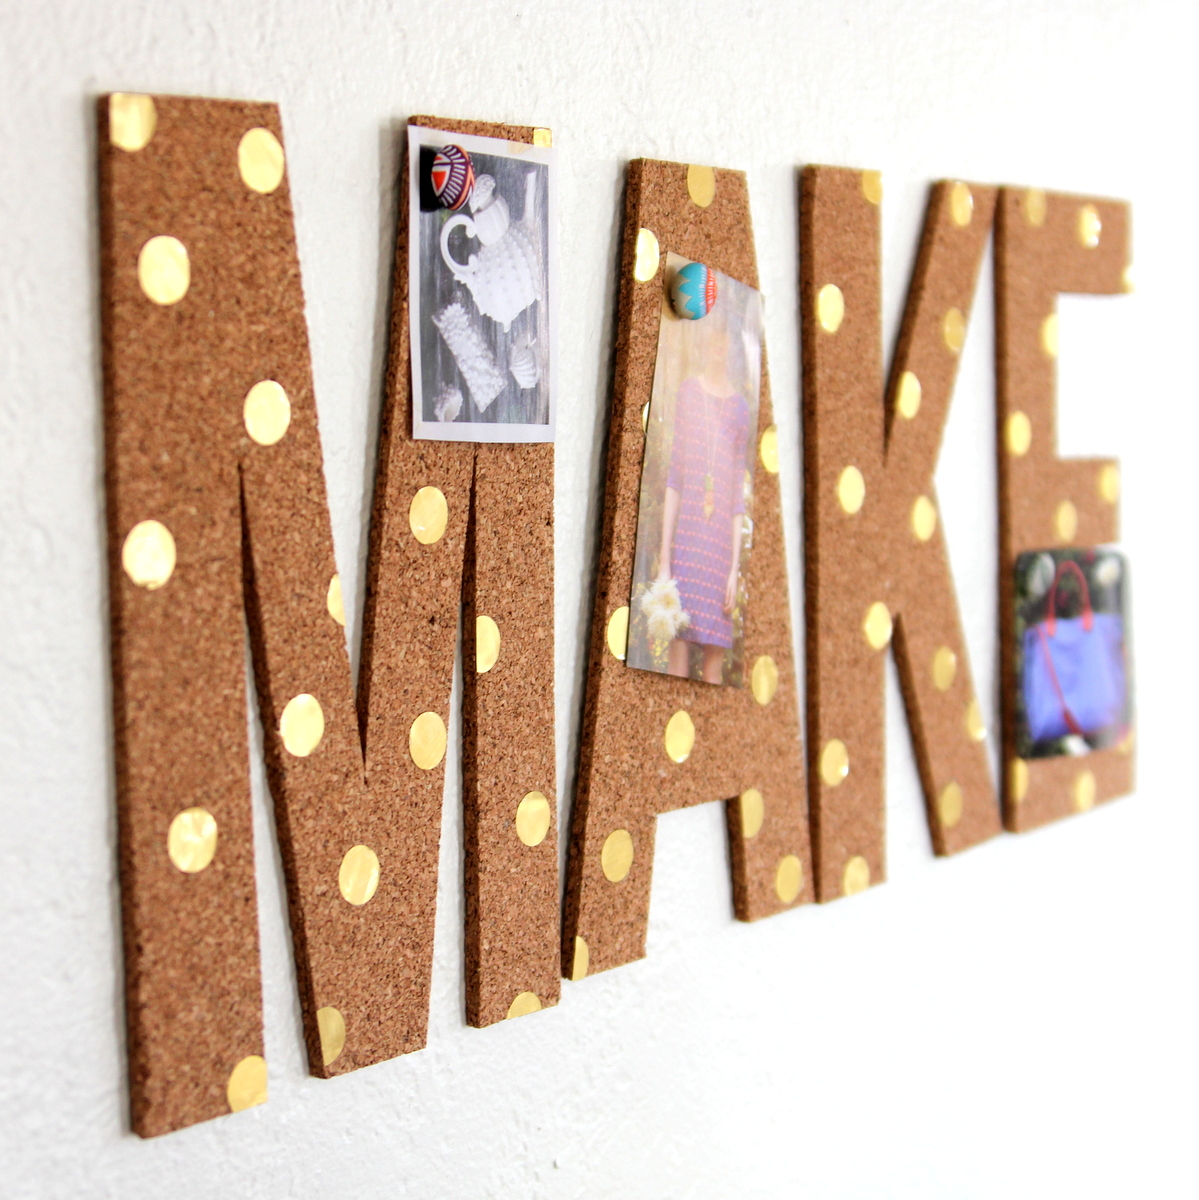 polka dot cork inspiration board